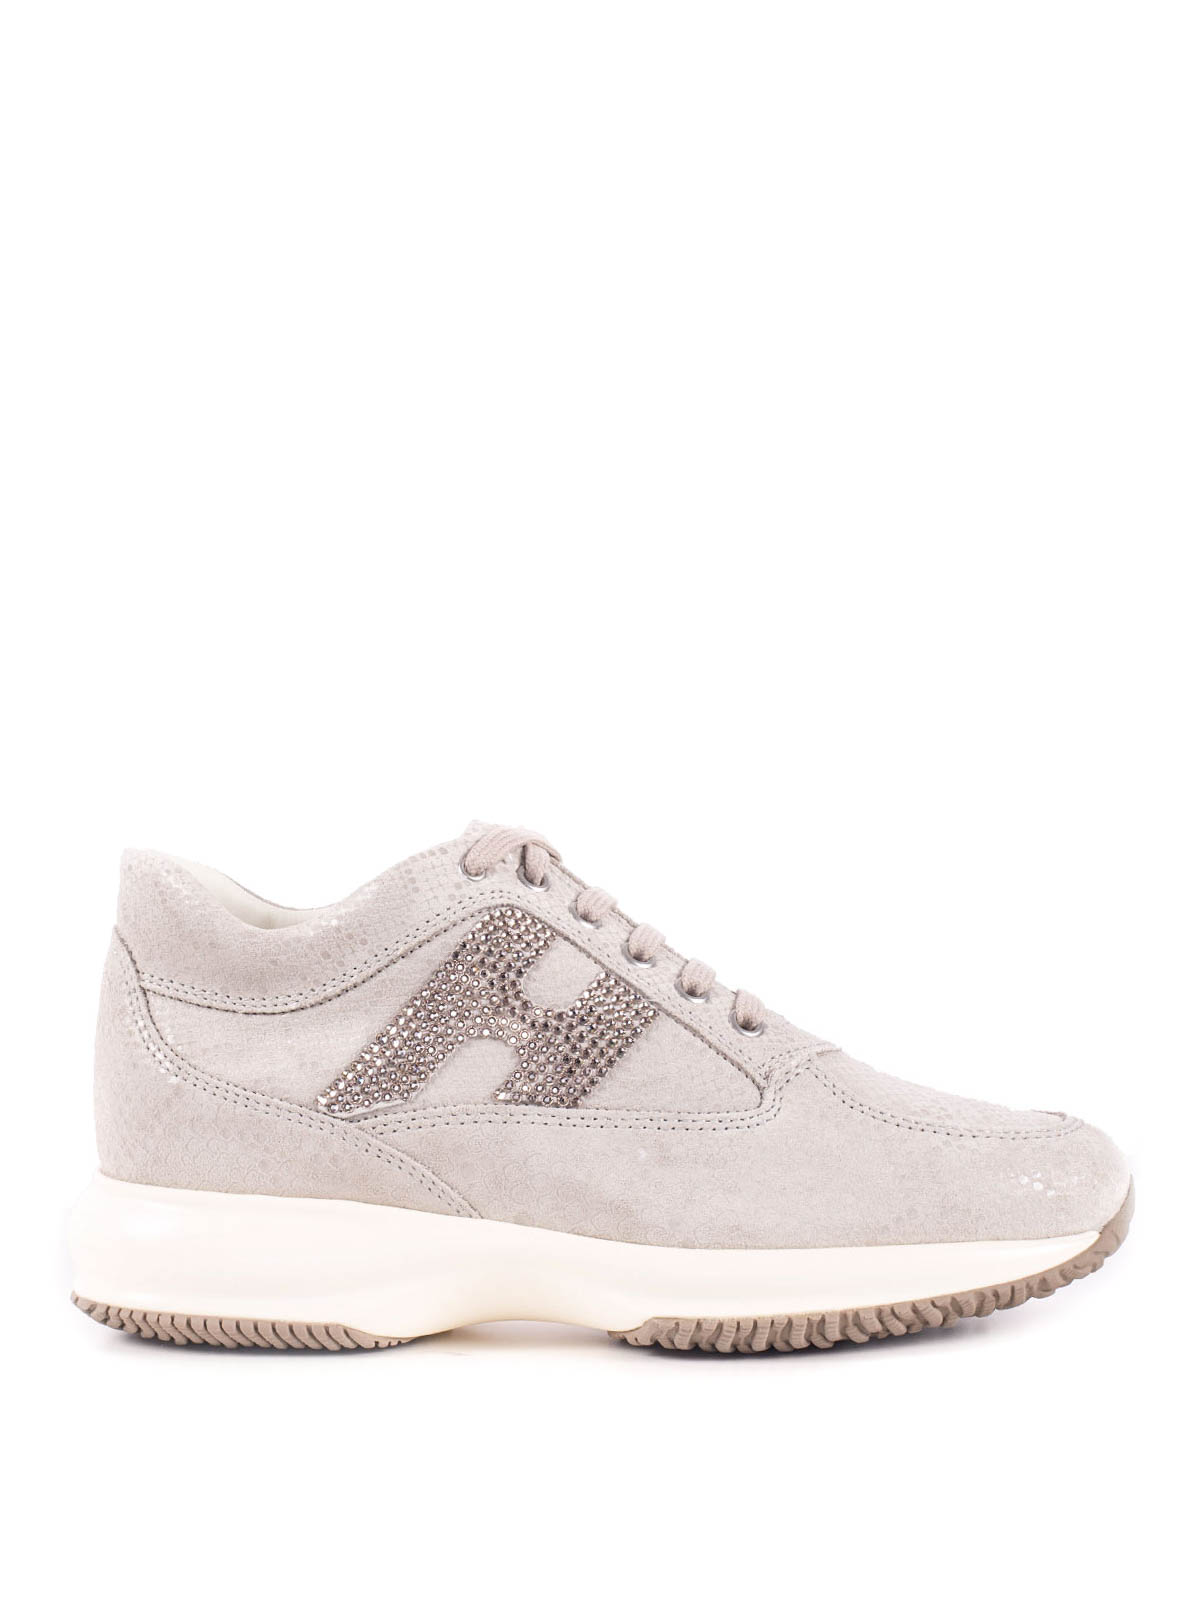 Hogan - Interactive stampa pitone H strass - sneakers ...